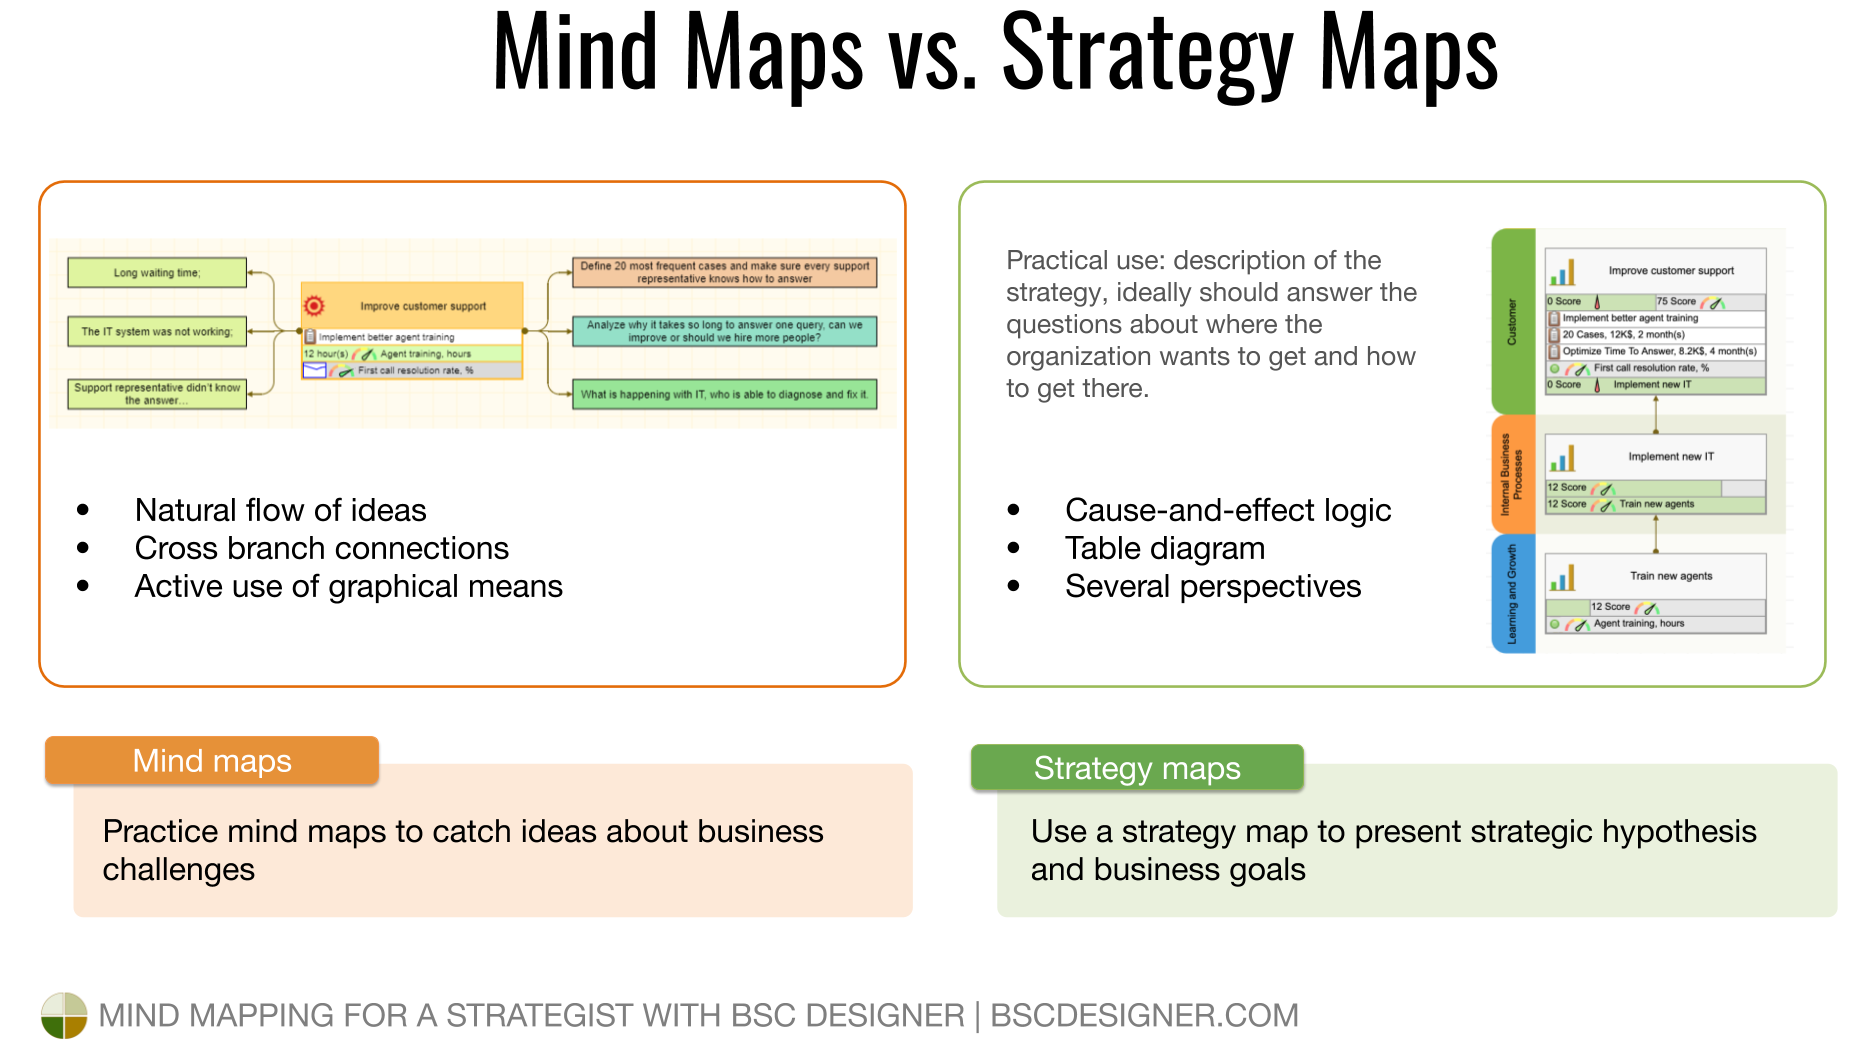 Catch random ideas with mind map and present business goals with cause-and-effect logic on a strategy map.